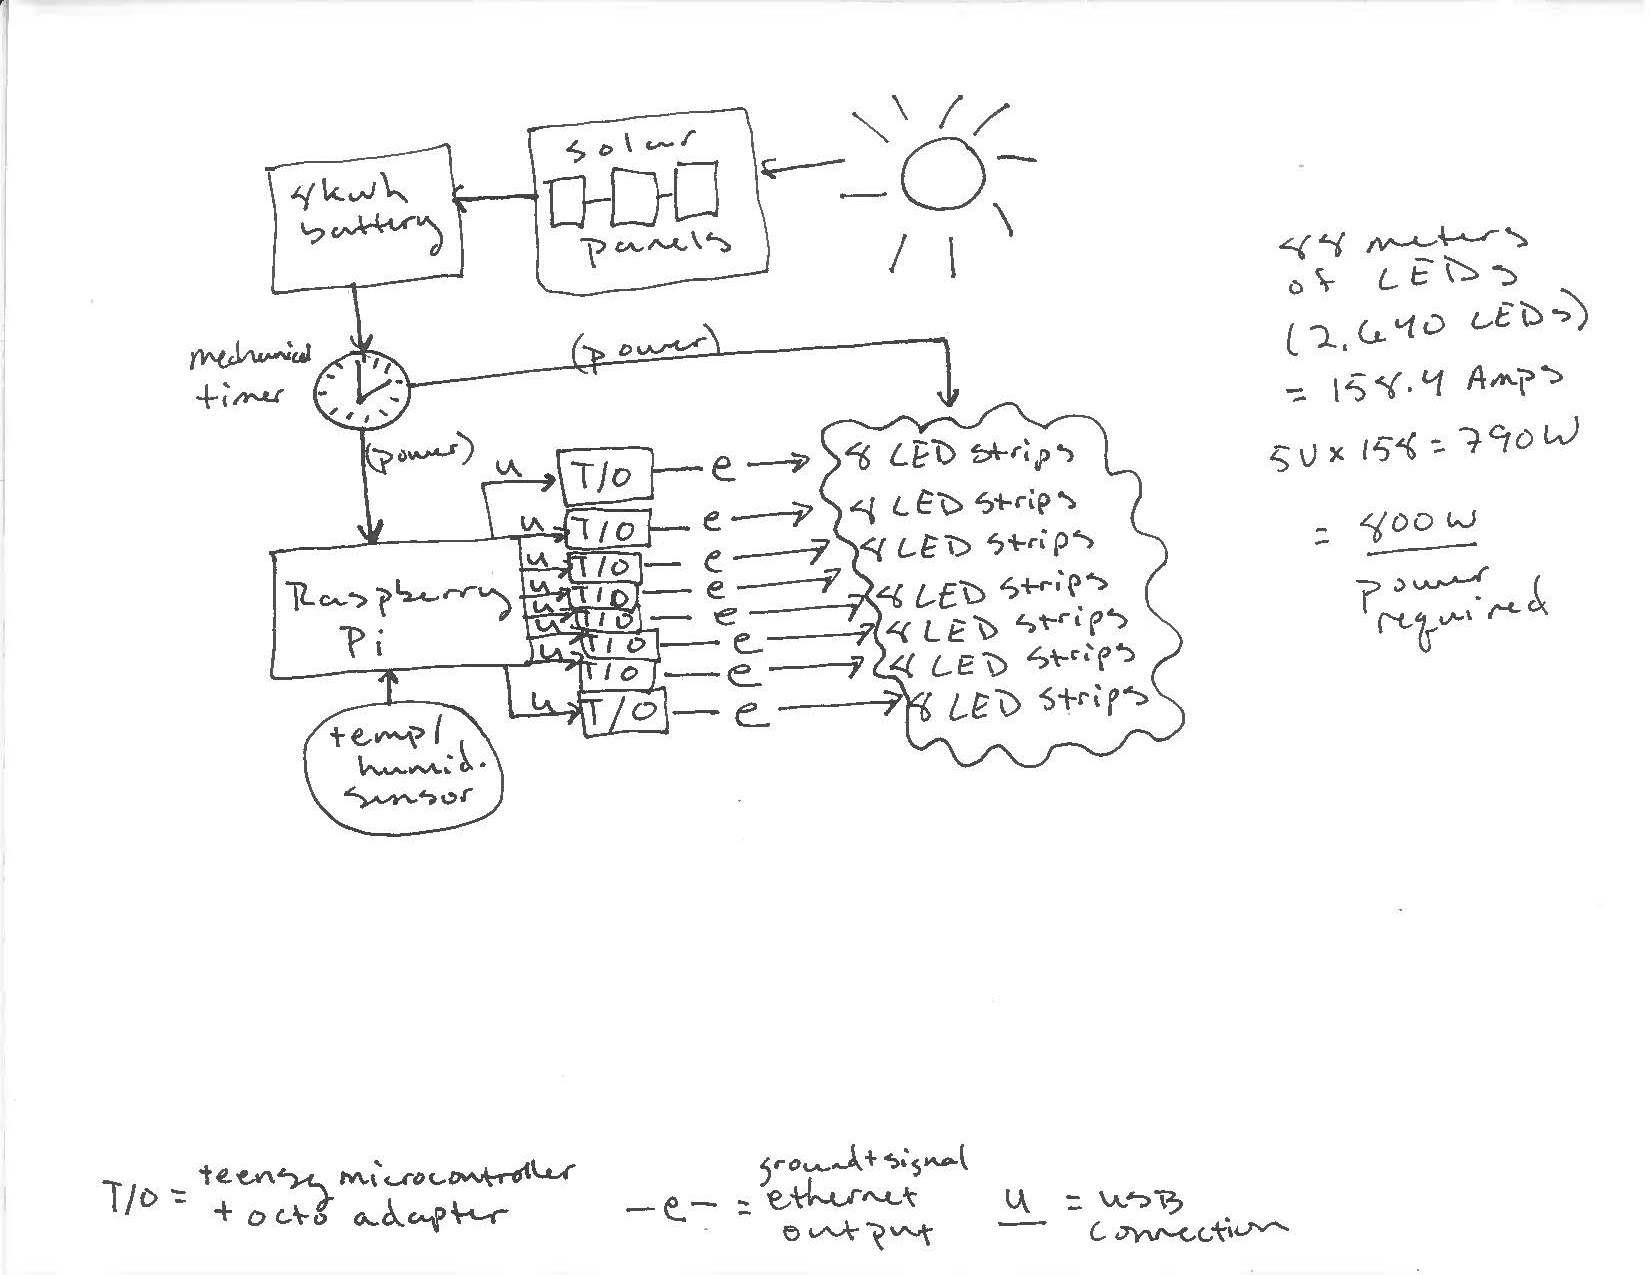 climate pulse wiring complex.jpg